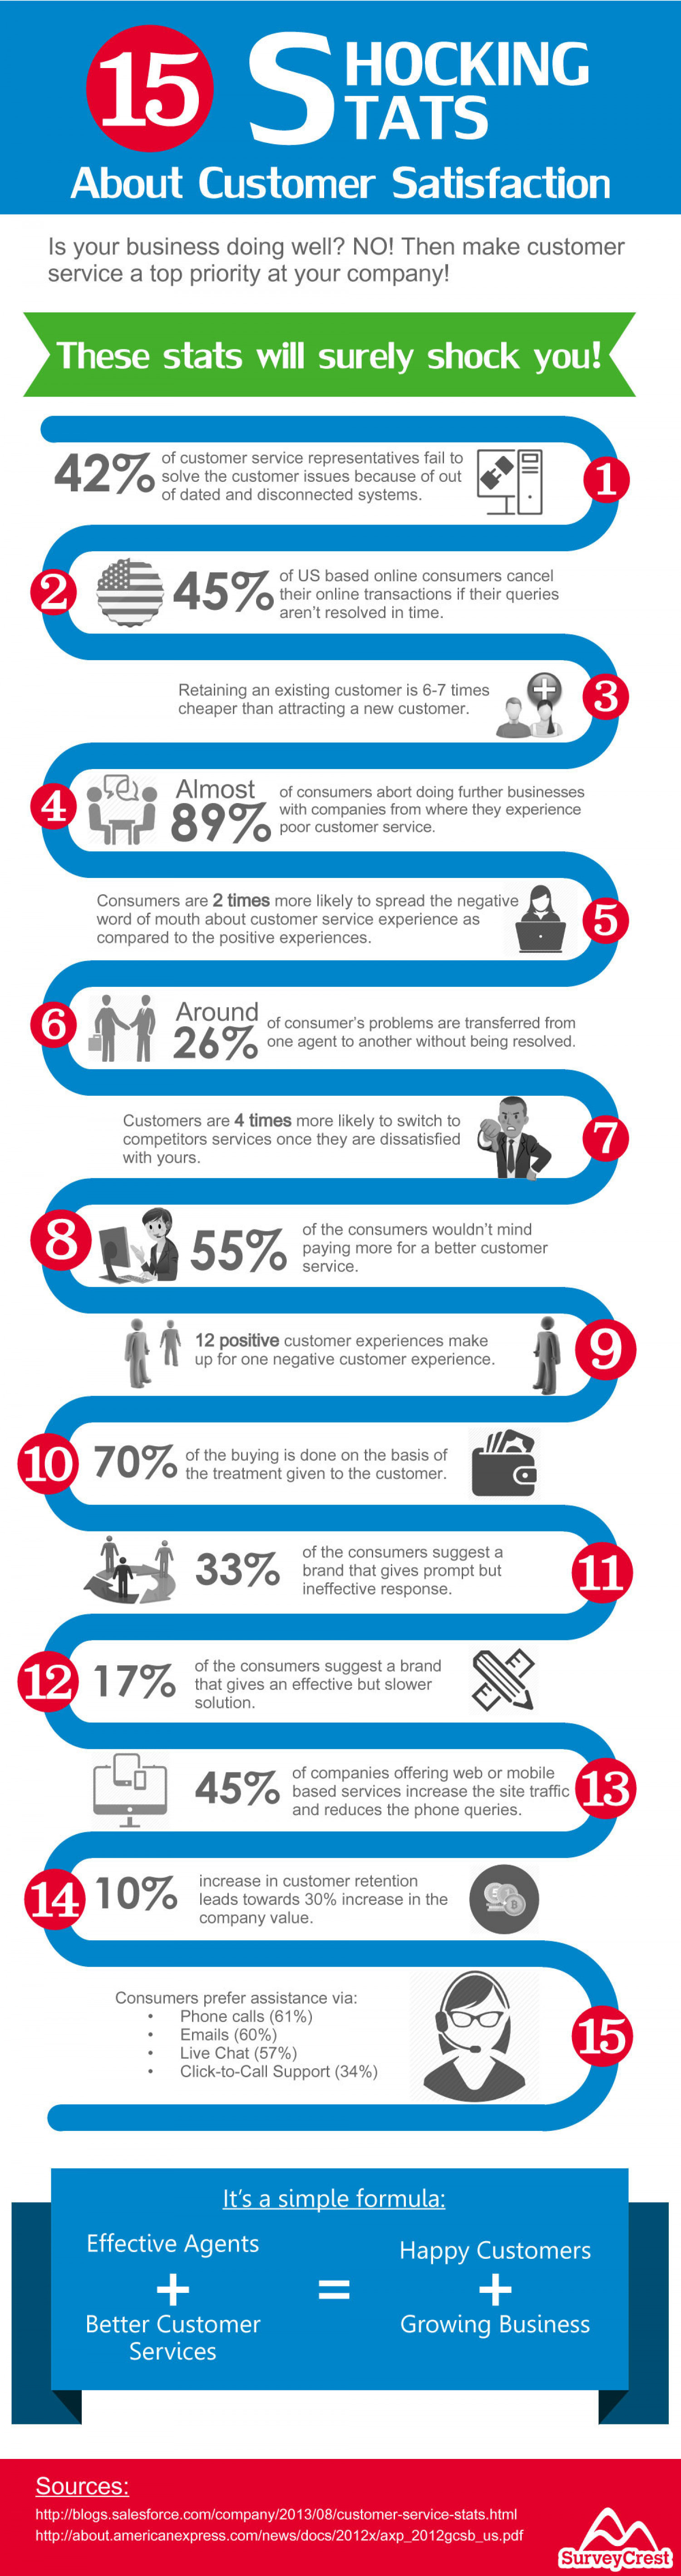 15 Shocking Stats About Customer Satisfaction Infographic